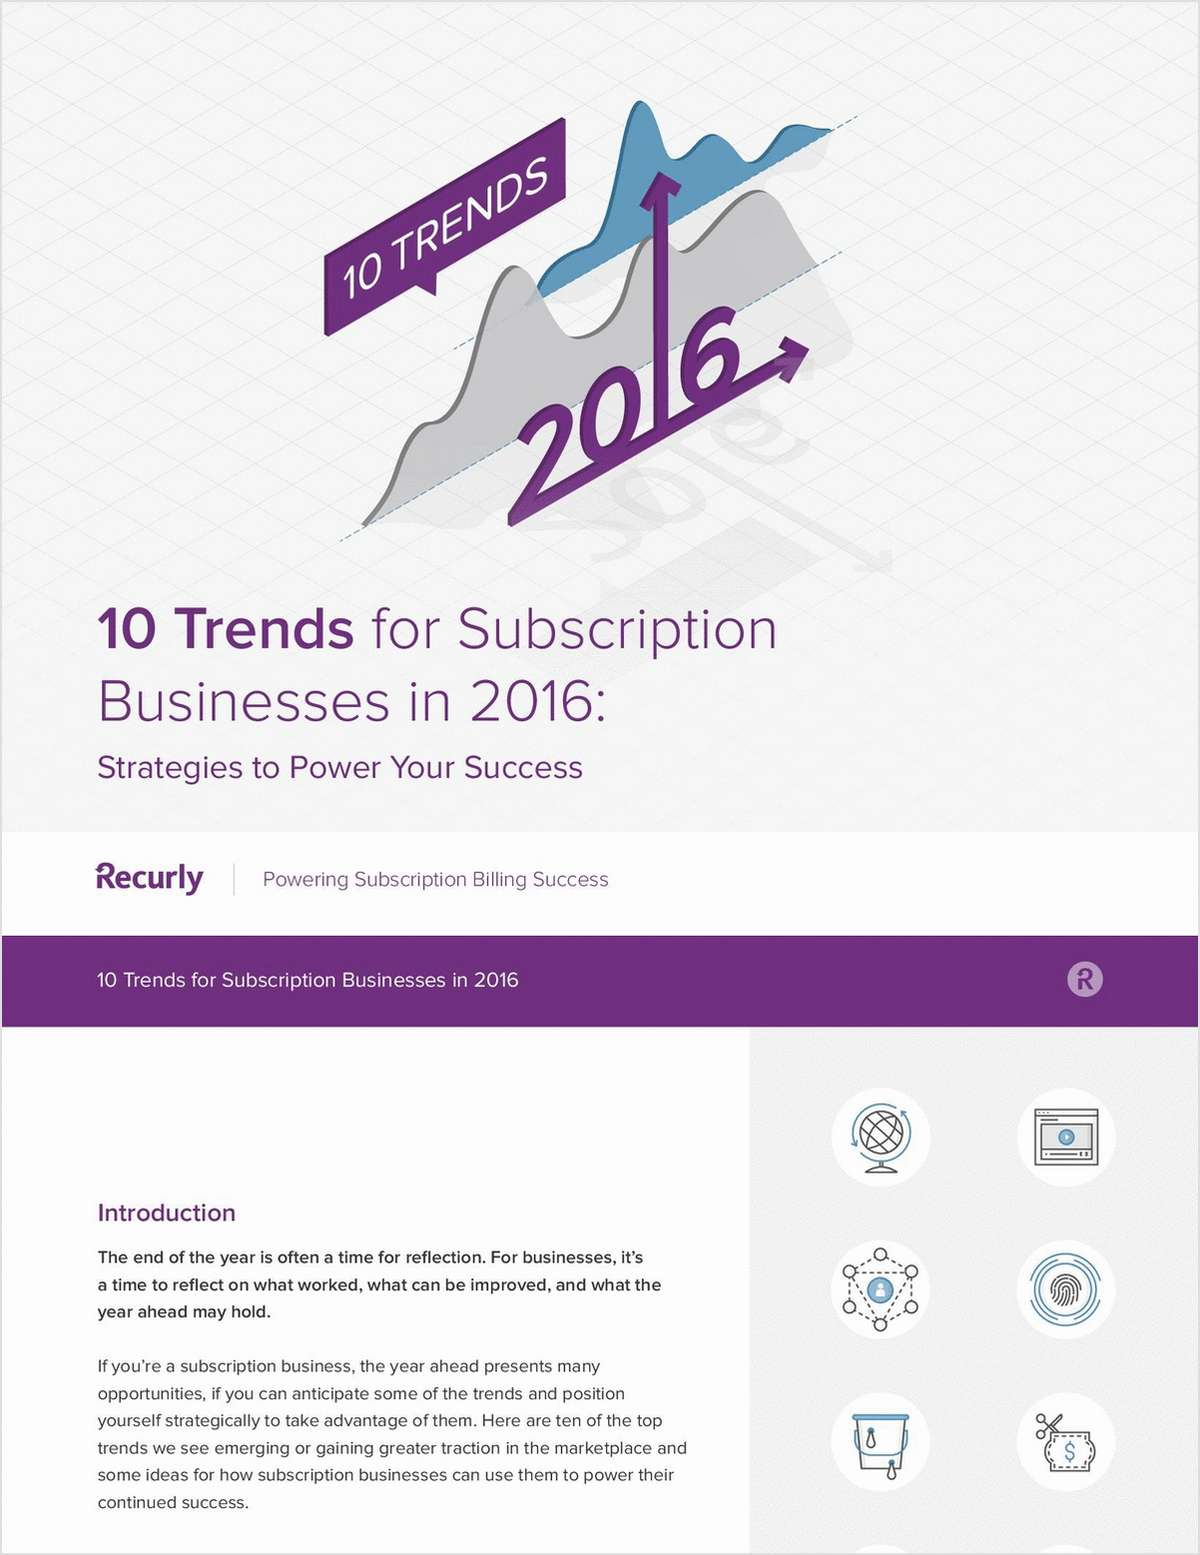 Subscription Businesses - Top 10 Trends for 2016!